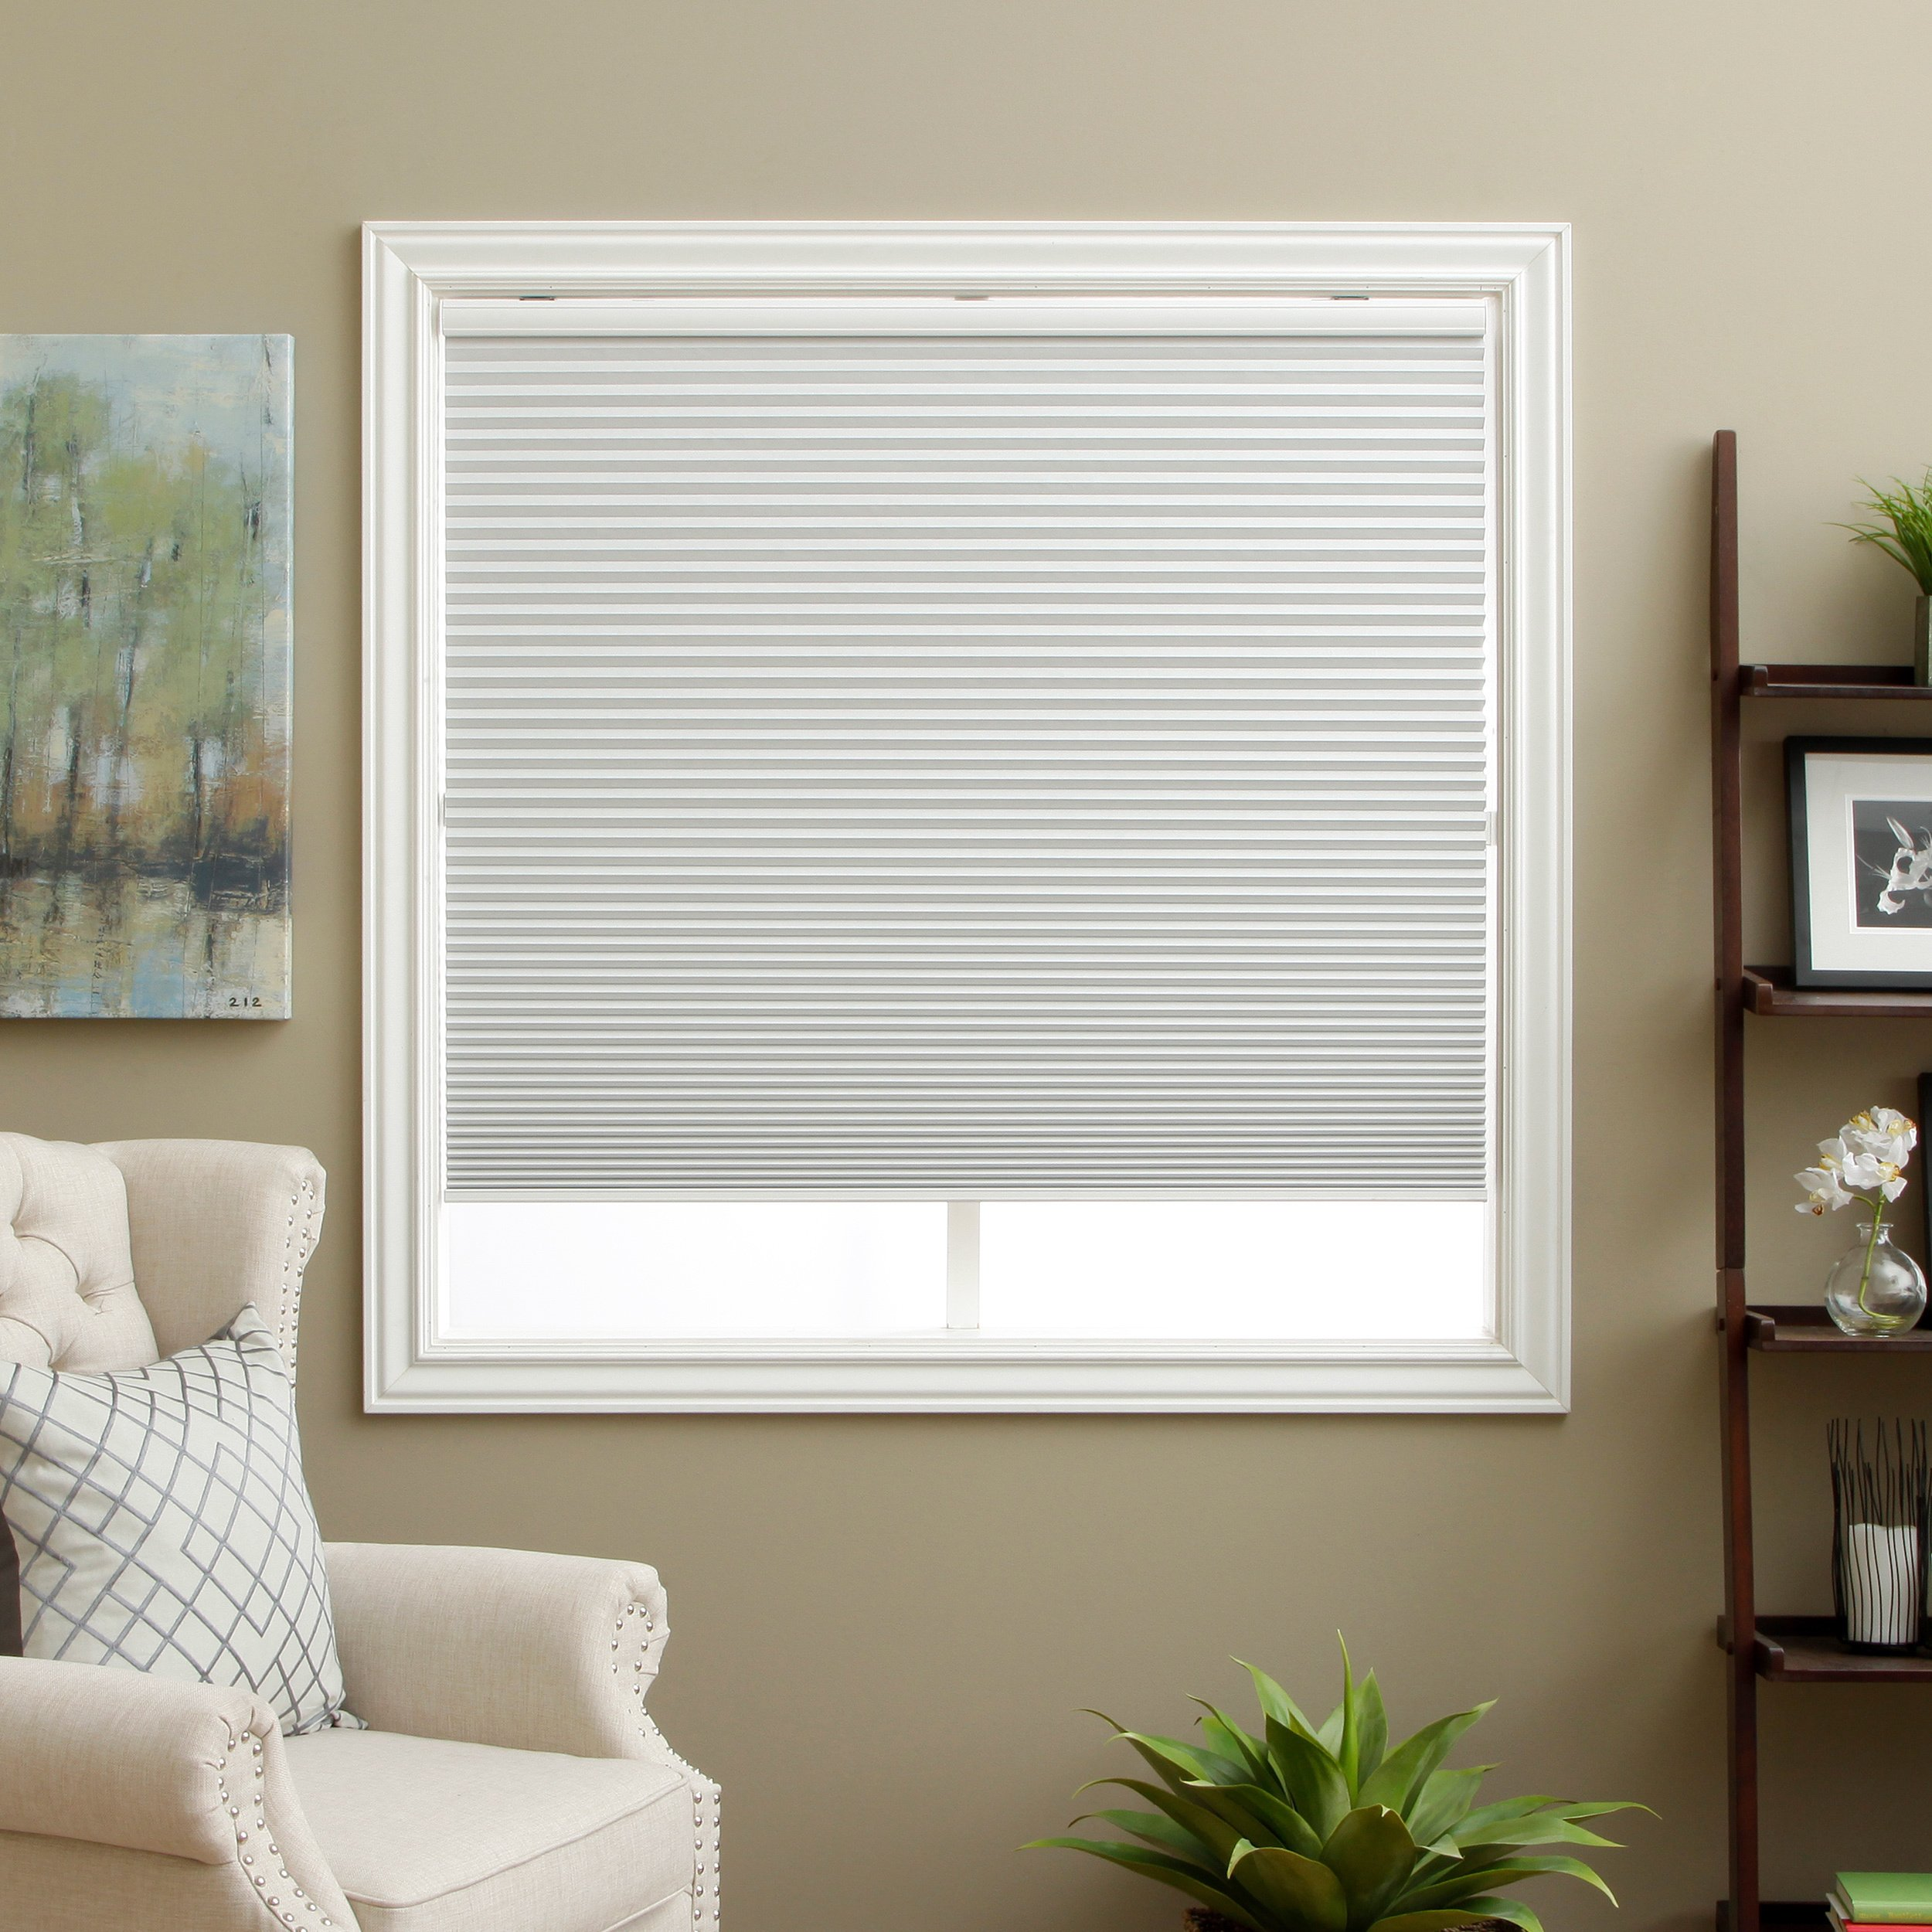 PH 1 Piece 31.5 W X 60 H Inches Off-White Blackout Blinds, Home Decor Light Filtering Cordless Cellular Shade, Includes Hardware, Horizontal Slat, Easy Match Window Treatments, Polyester Material by PH